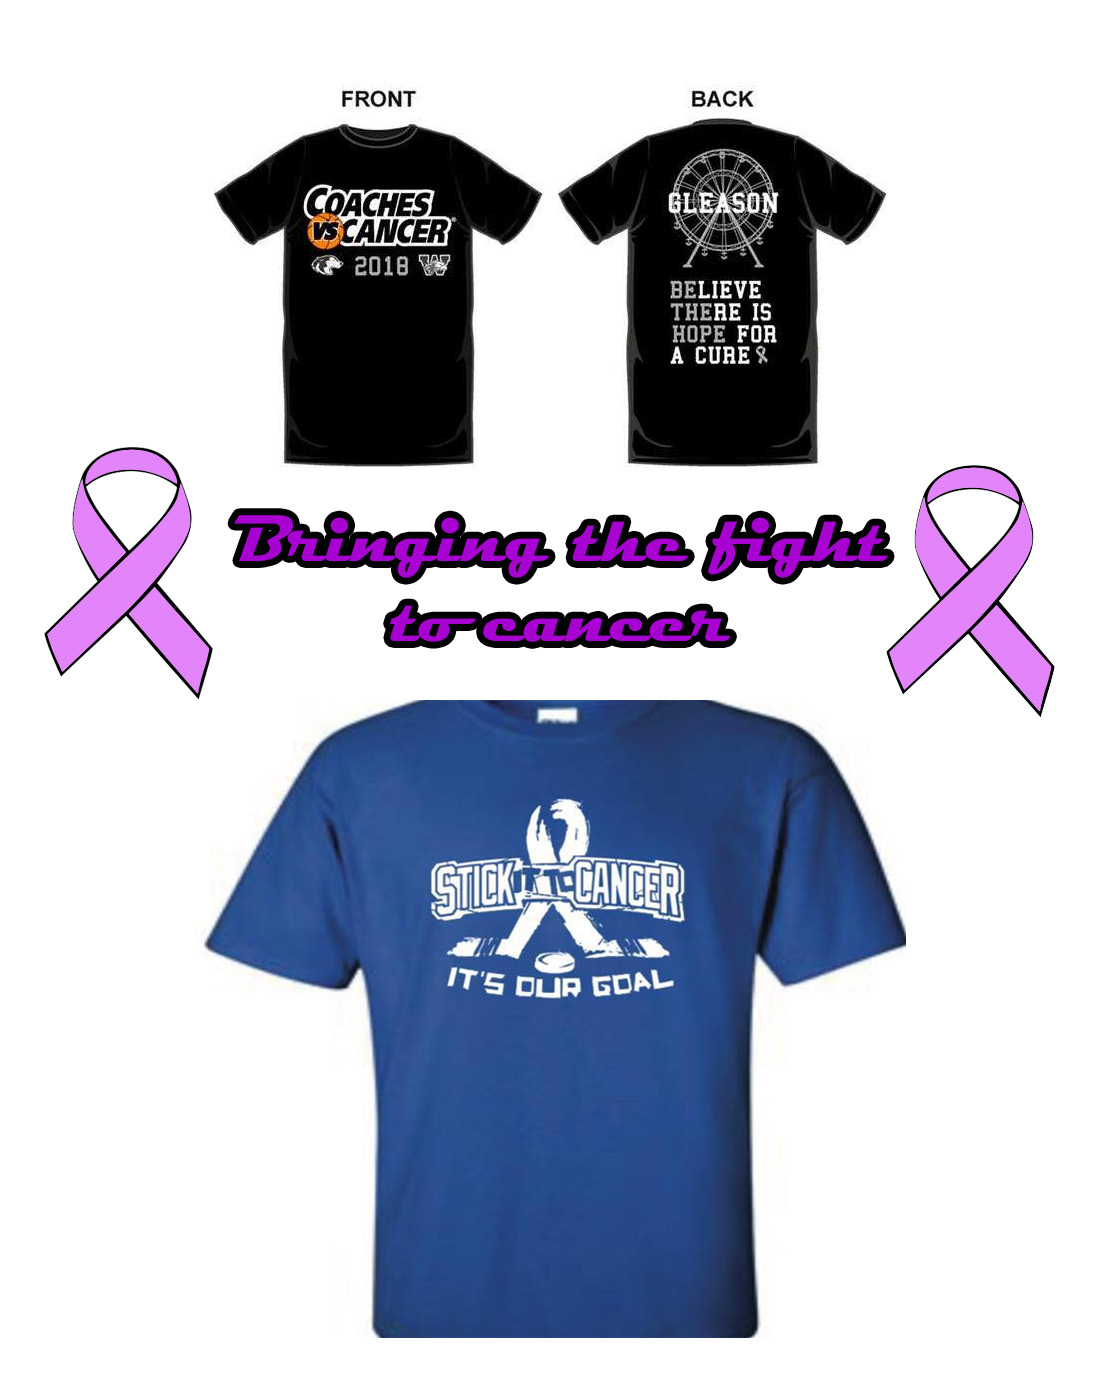 Owatonna Sports will be hosting nights to benefit cancer.